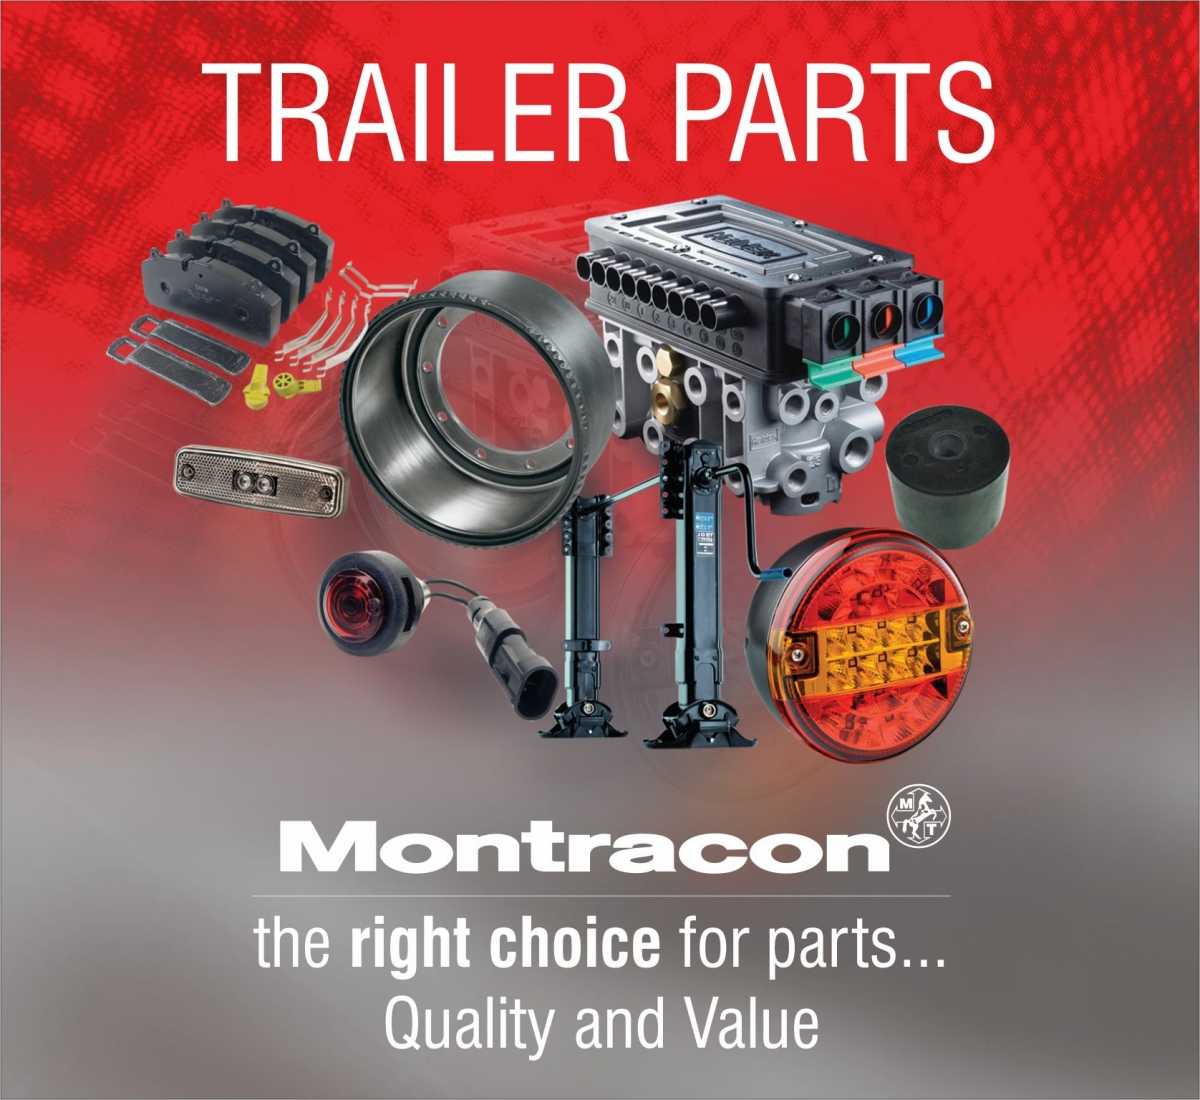 Witness the Quality and Value of Montracon's Trailer Parts